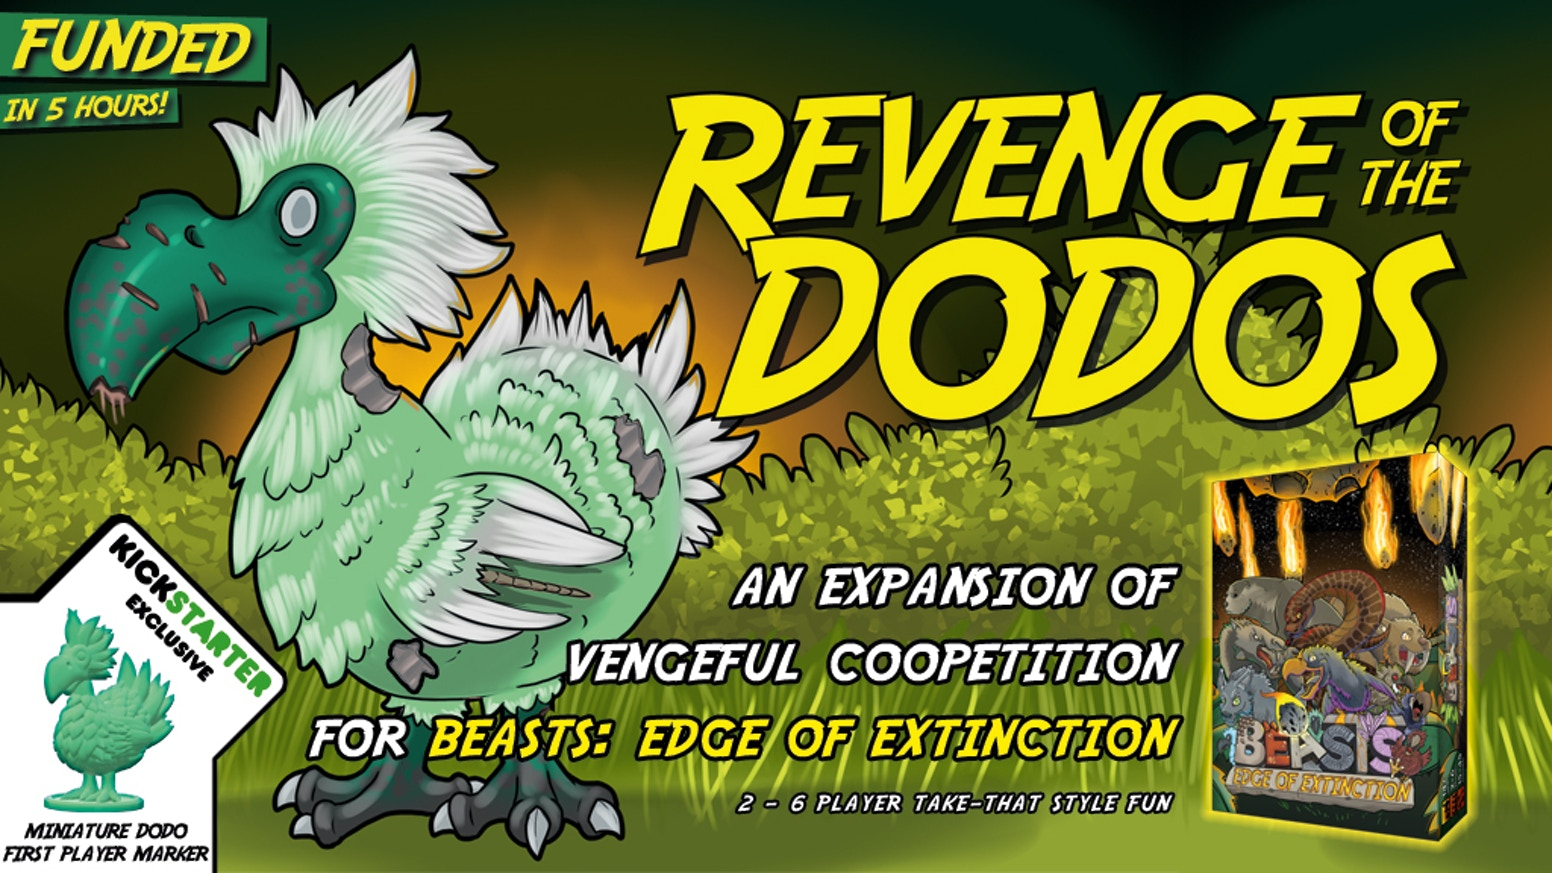 An expansion of vengeful coopetition for the Beasts: Edge of Extinction tabletop game.